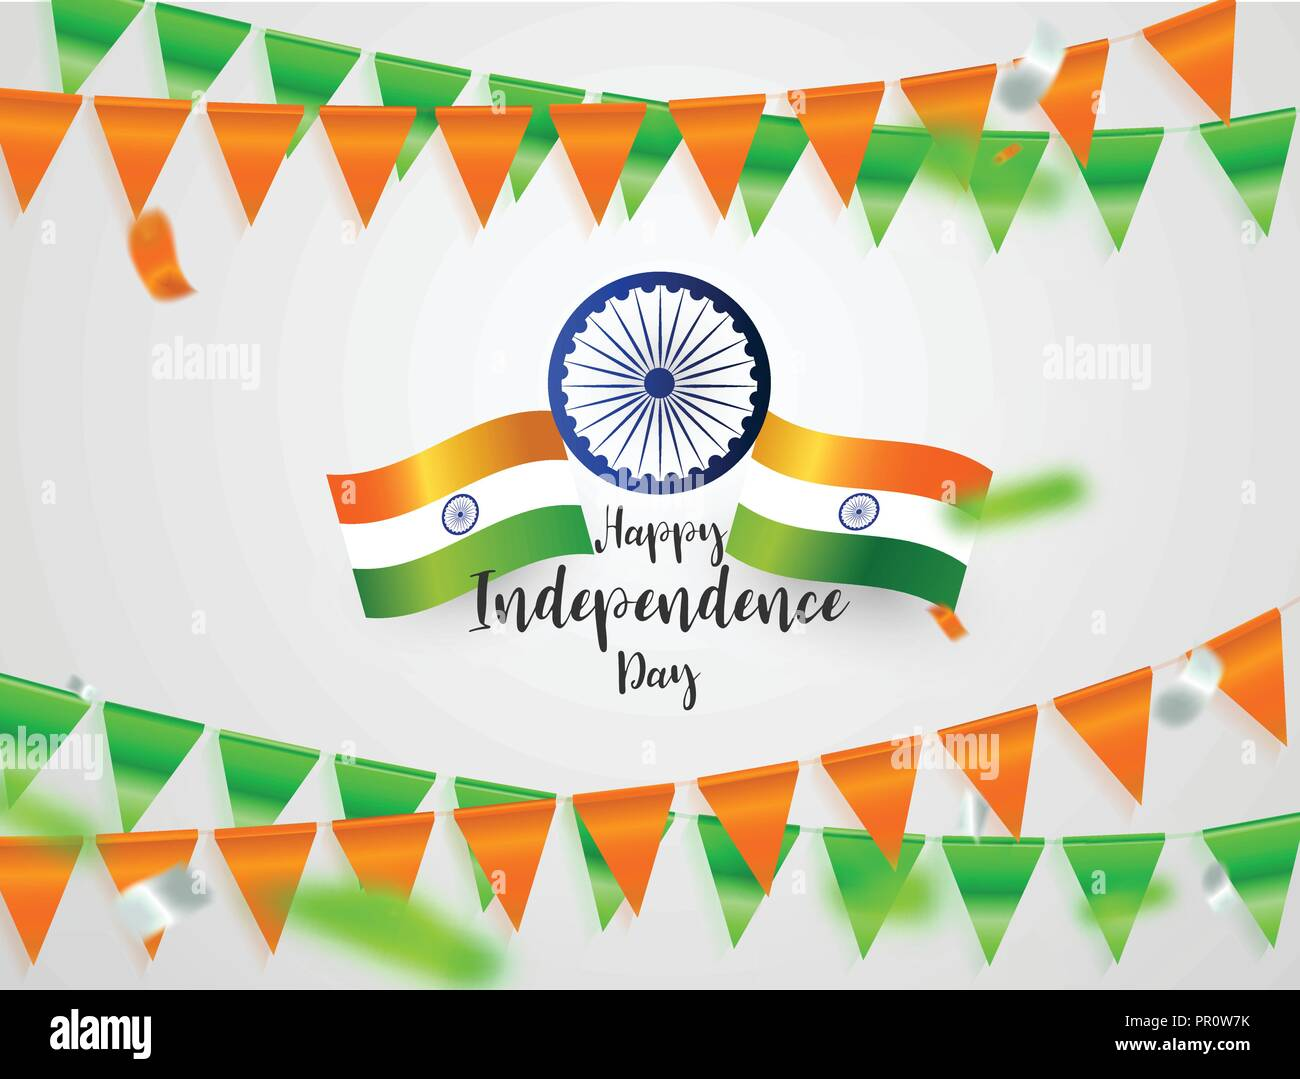 Green Orange Flags Confetti Concept Design Independence Day India